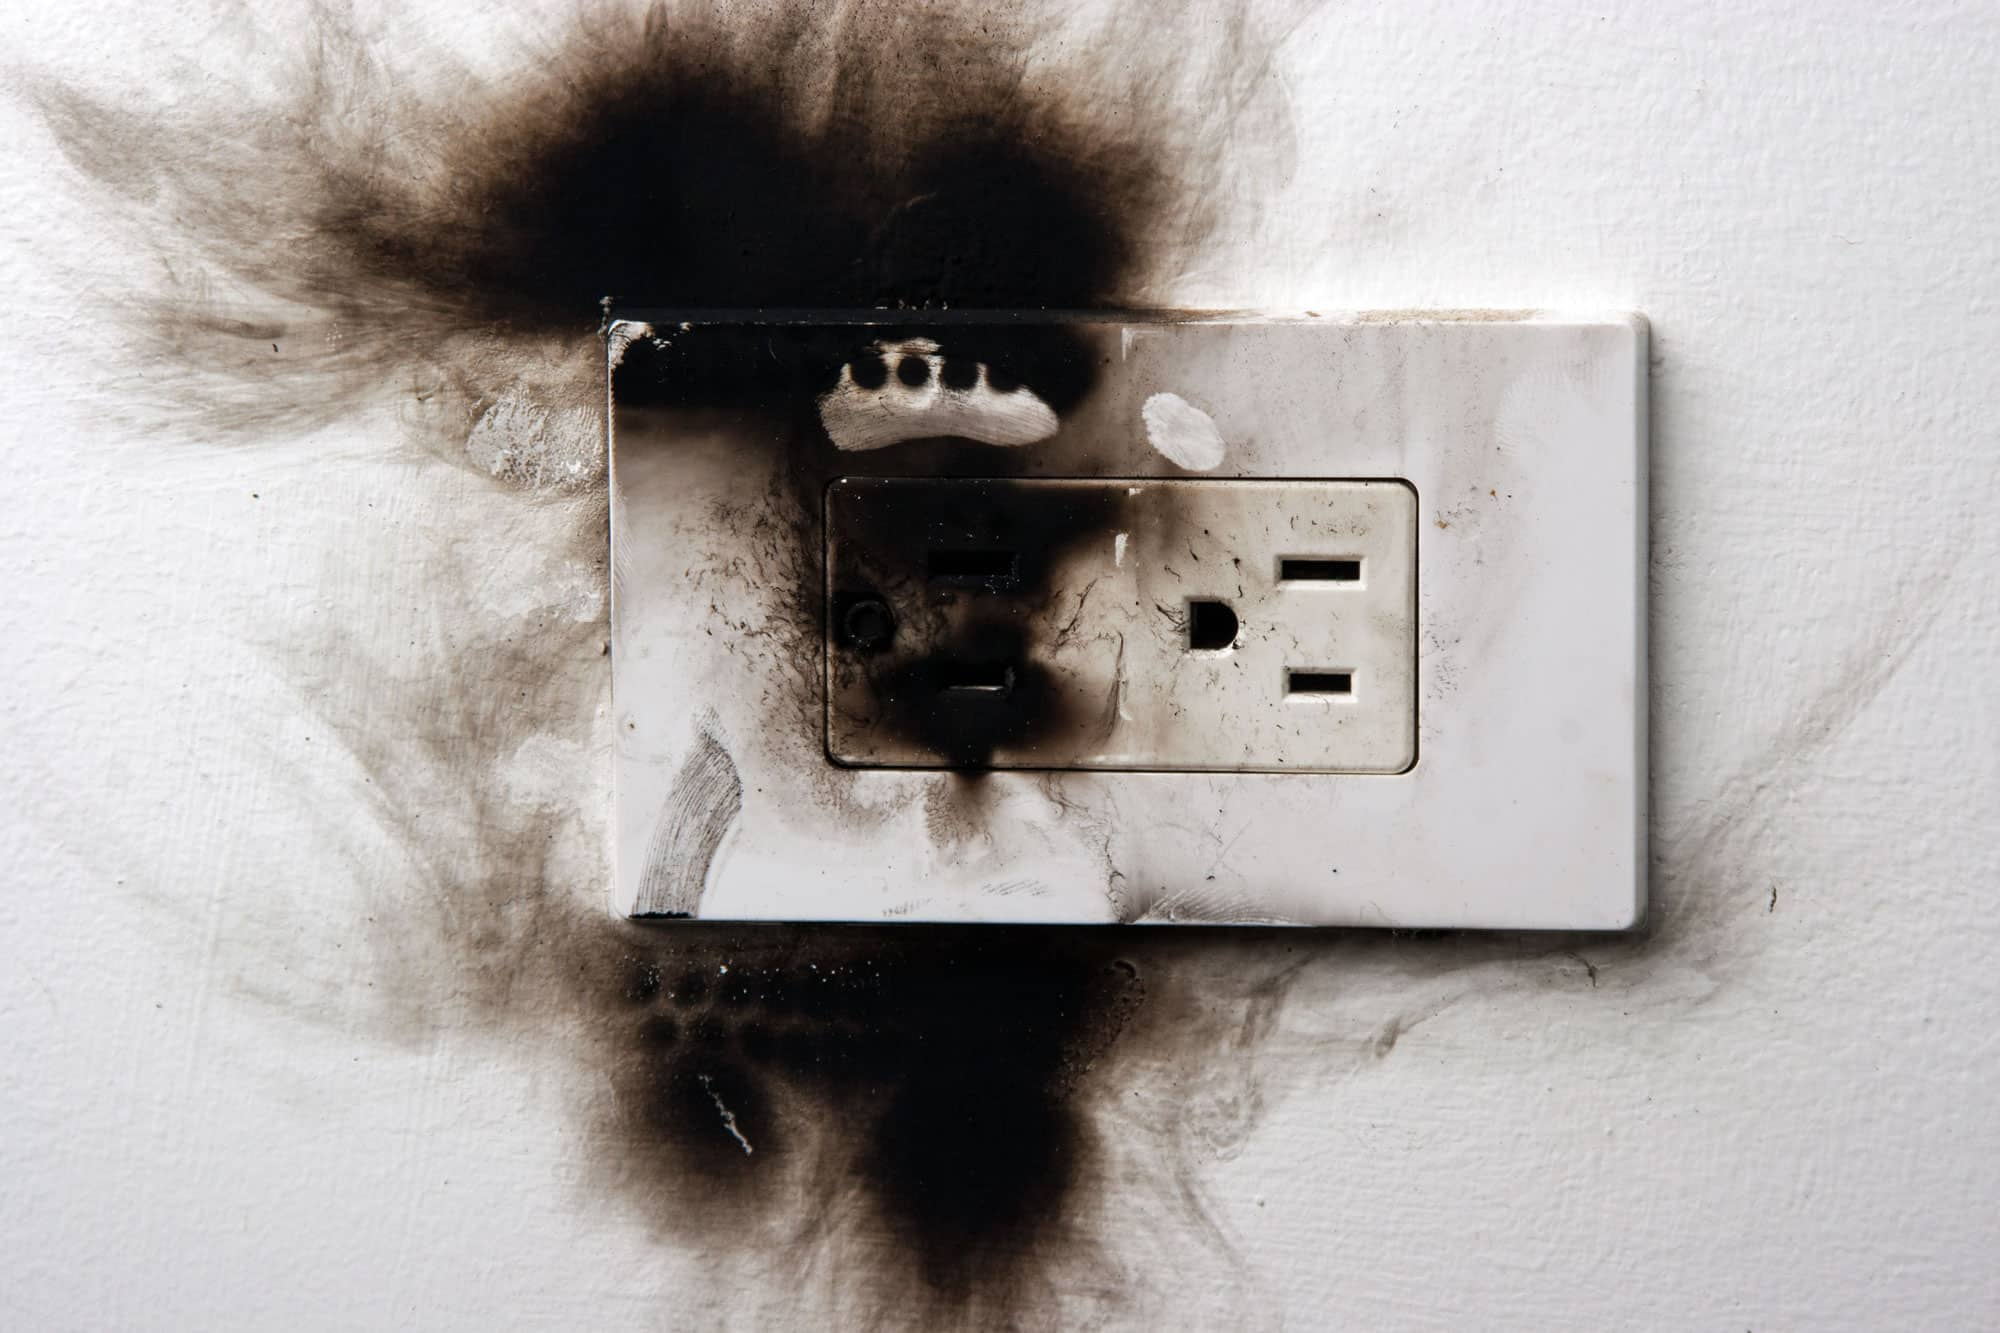 A wall outlet showing fire damage